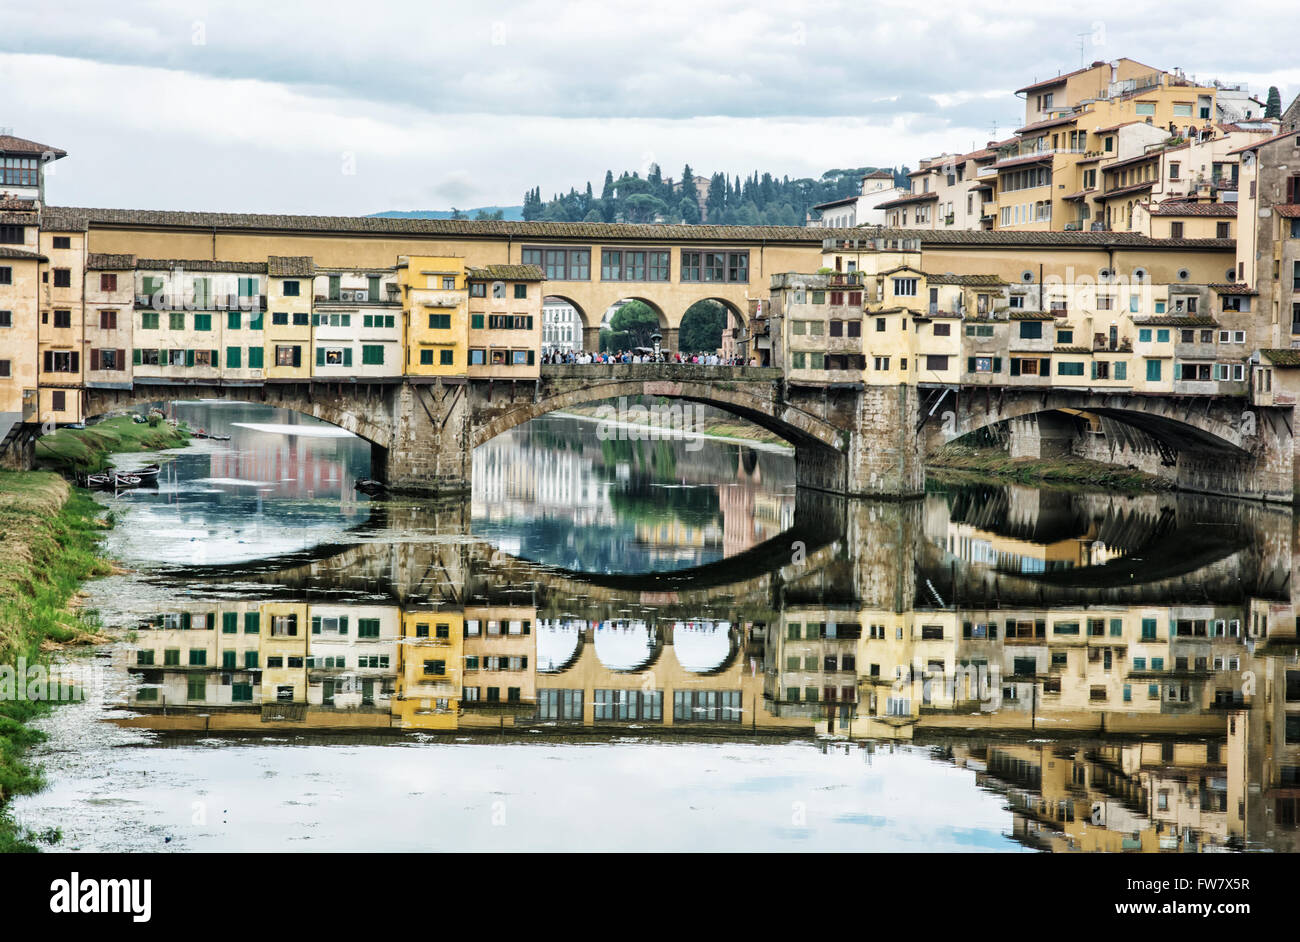 Ponte Vecchio is mirrored in the river Arno, Florence, Tuscany, Italy. Travel destination. Cultural heritage. Tourism - Stock Image